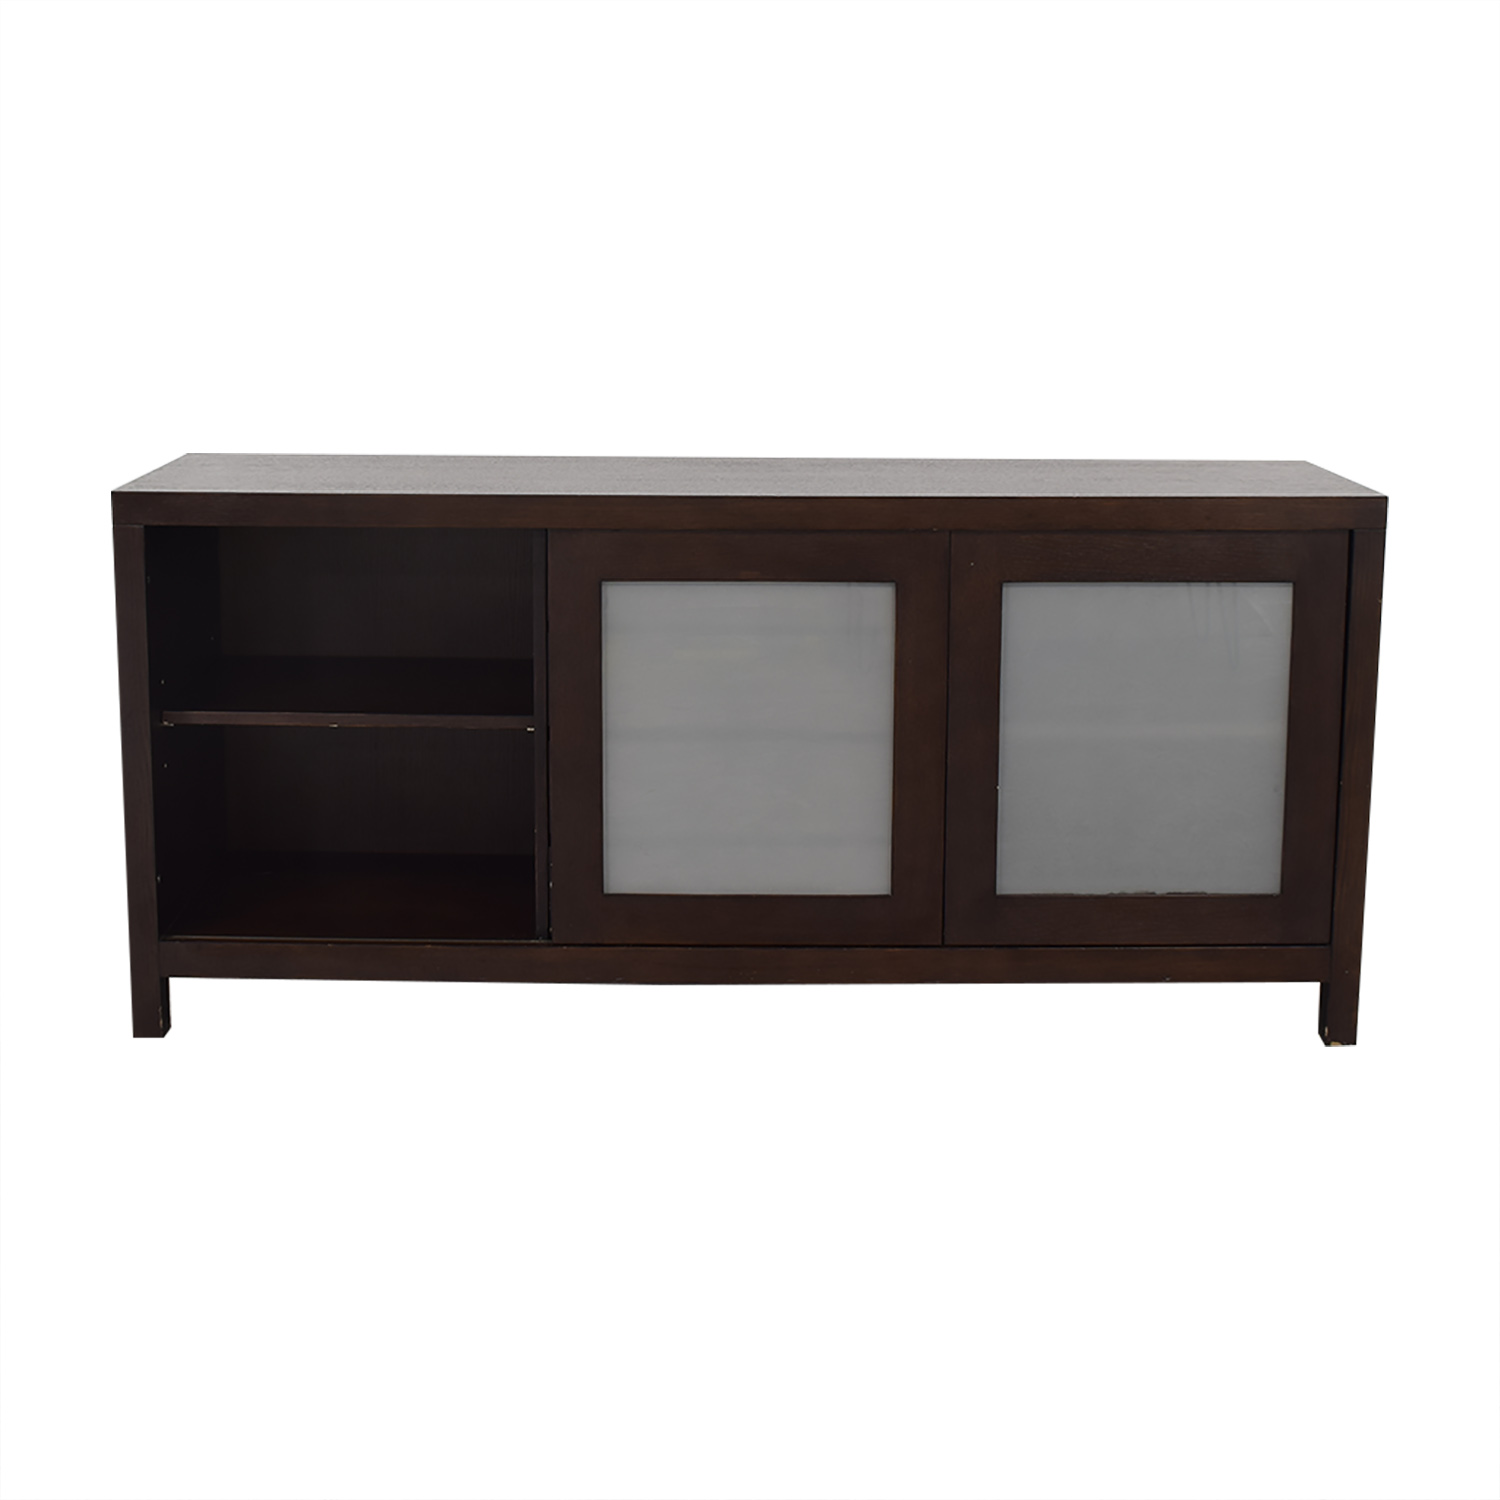 Crate & Barrel Crate & Barrel Sideboard with Cabinets Cabinets & Sideboards